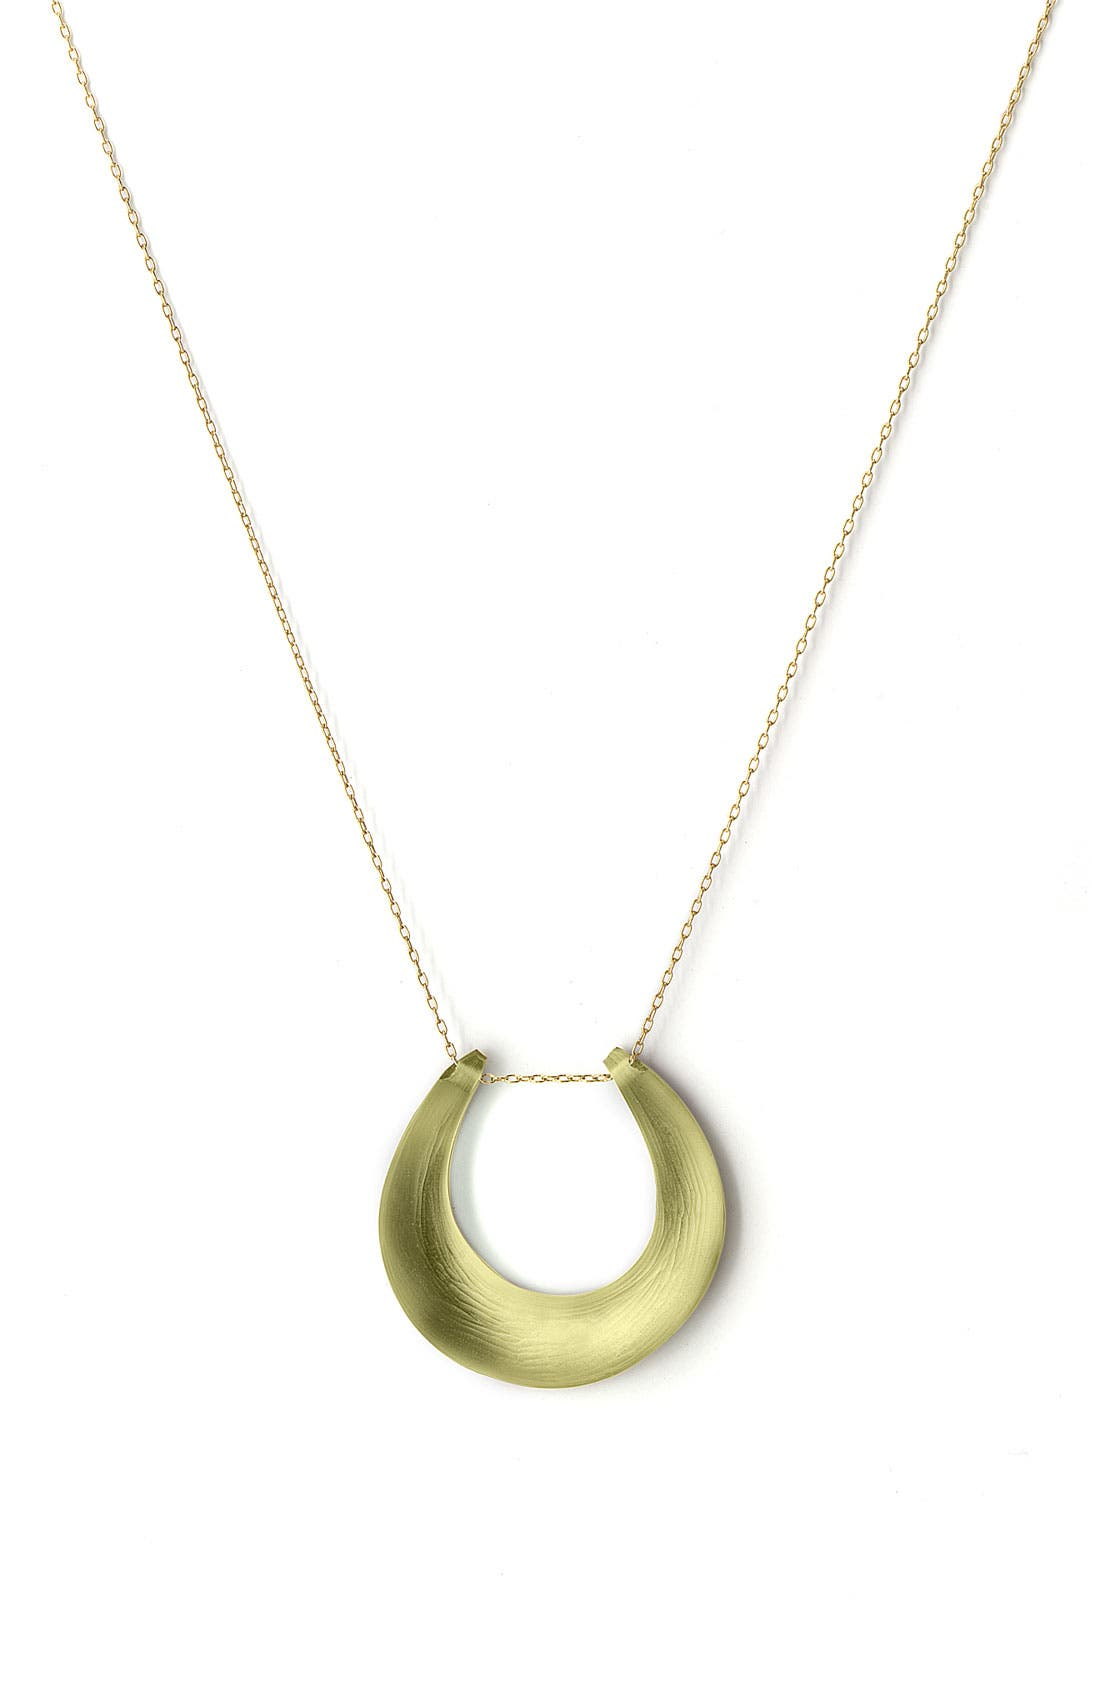 Alternate Image 1 Selected - Alexis Bittar Small Horseshoe Necklace